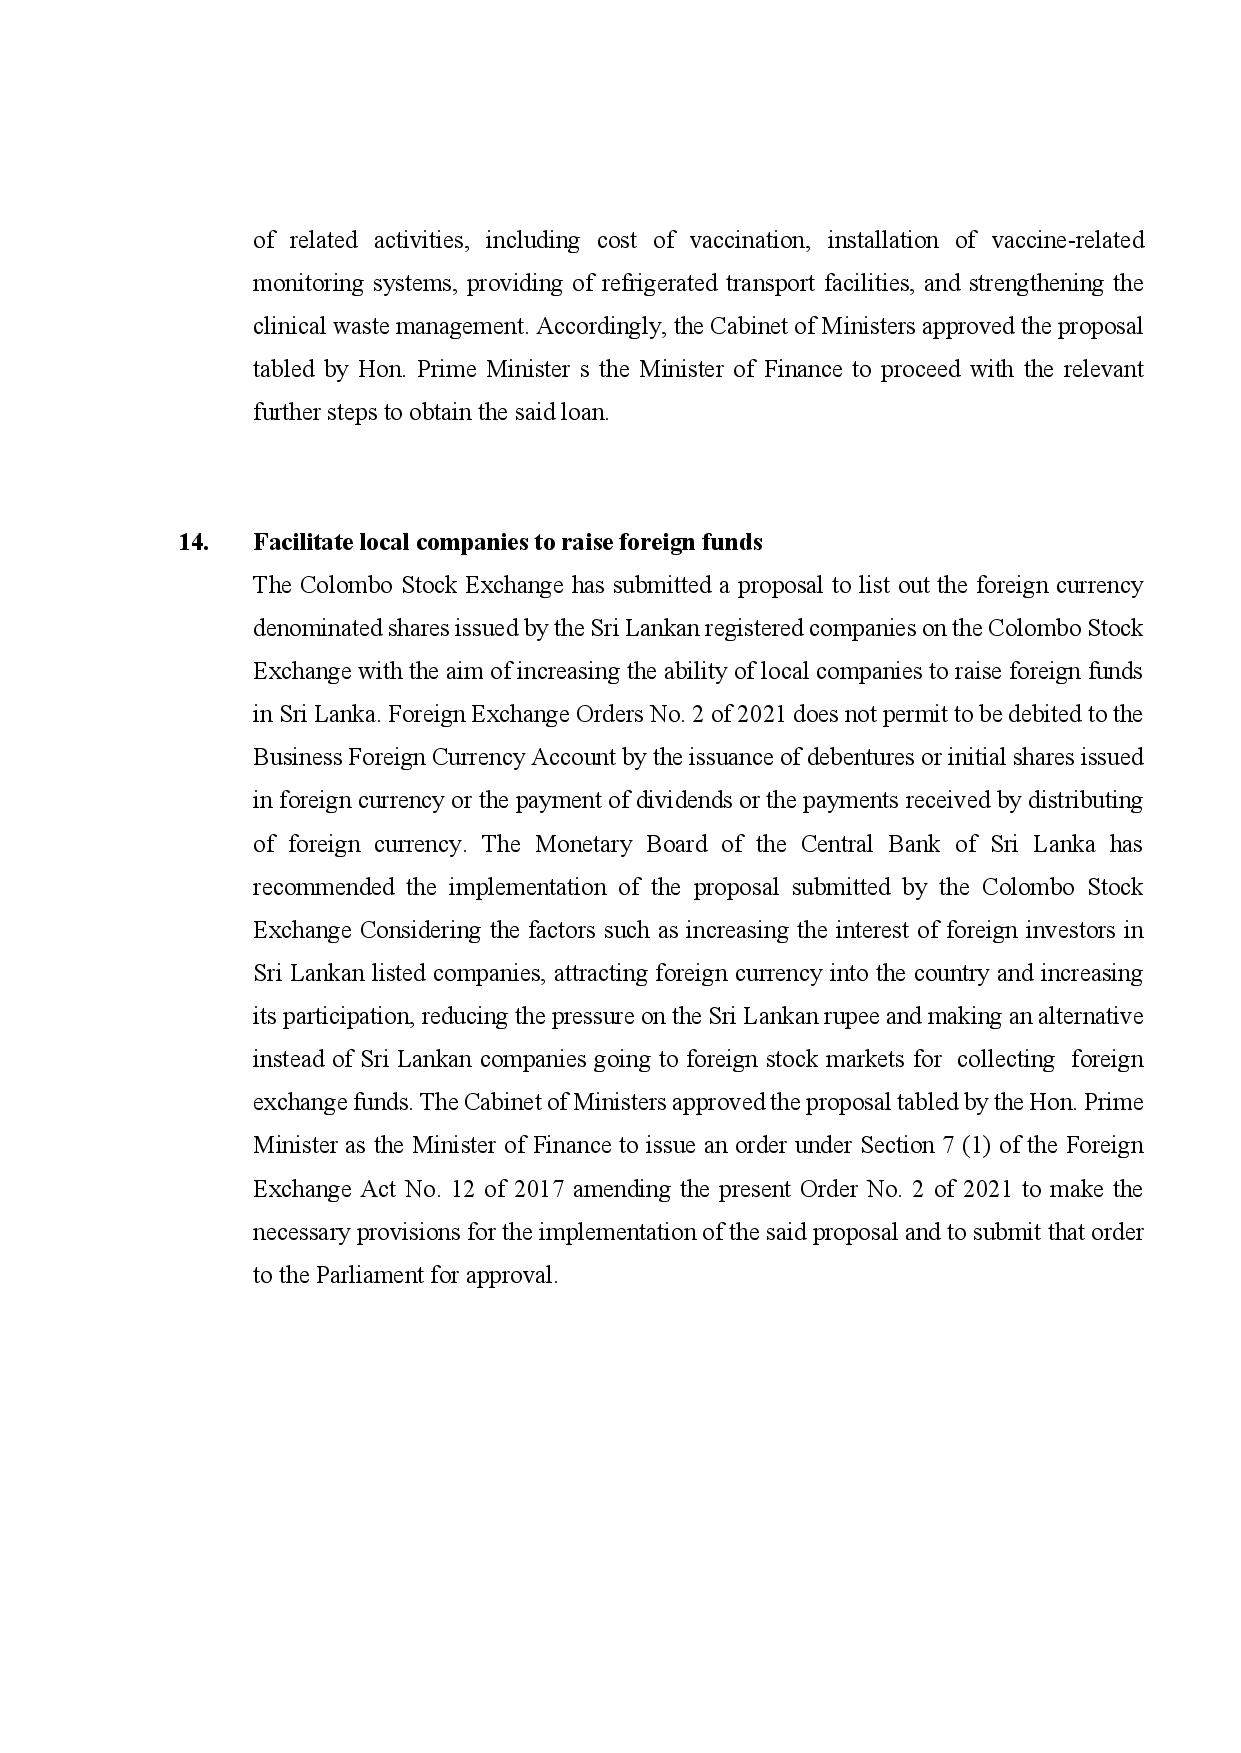 Cabinet Decision on 28.06.2021 English page 007